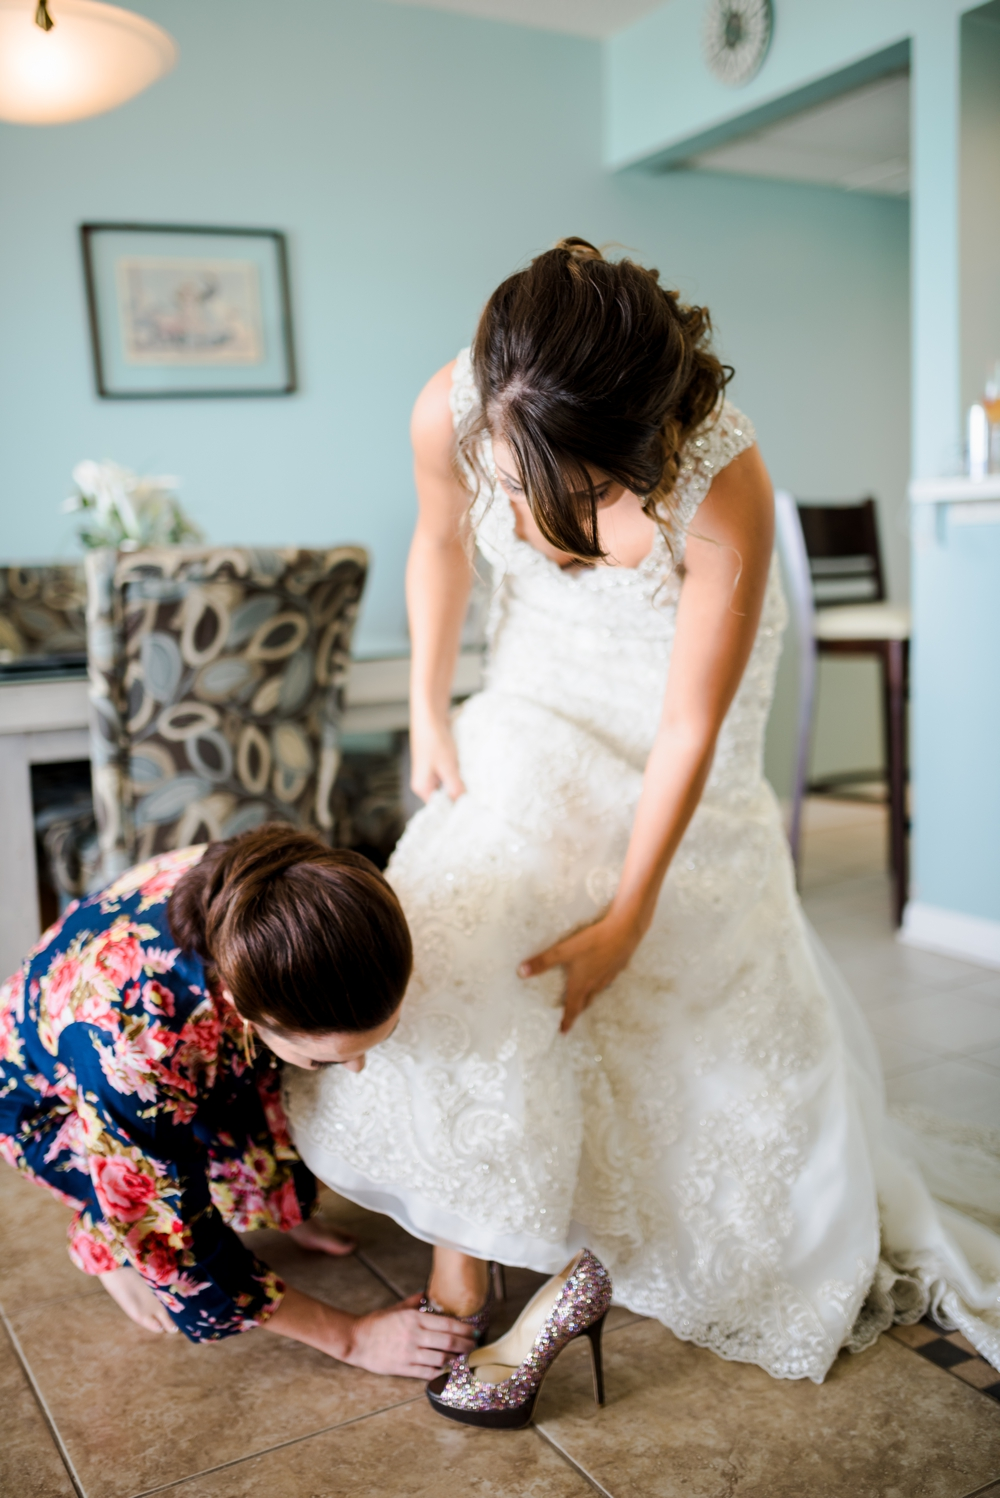 wallin-florida-wedding-photographer-kiersten-grant-28.jpg